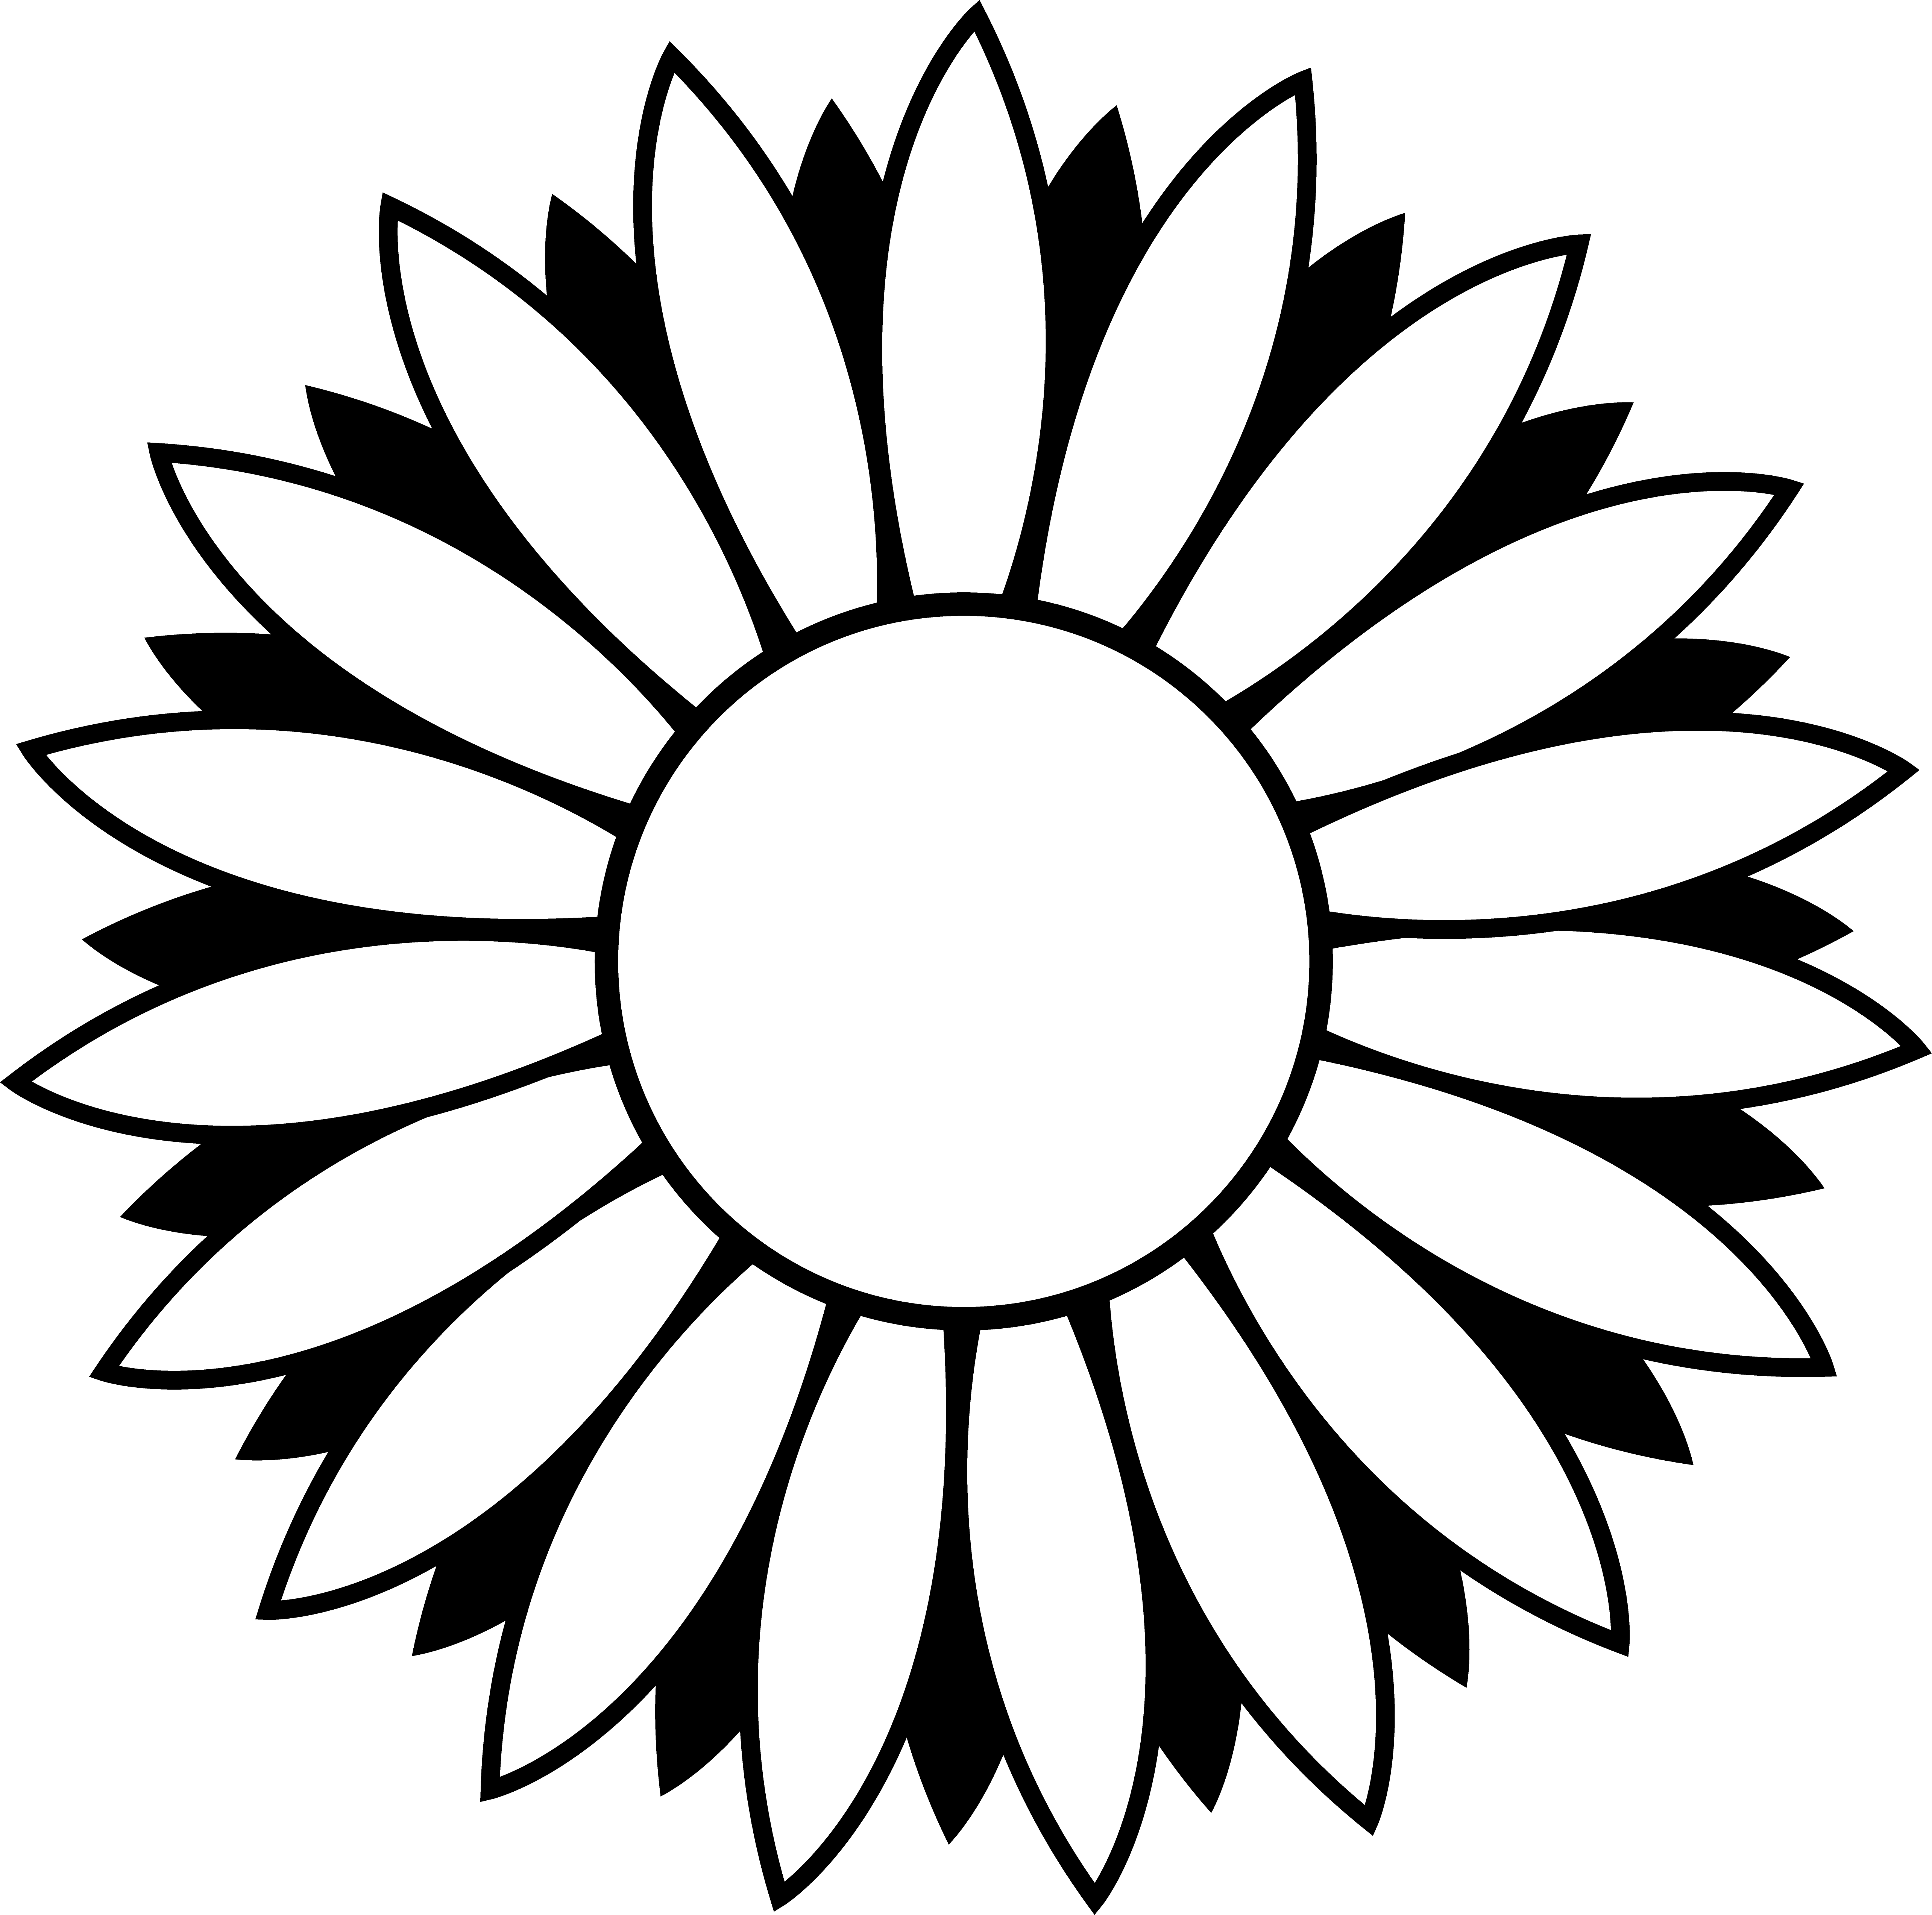 image download Poinsettia clipart black and white free. Pin by laura wagstaffe